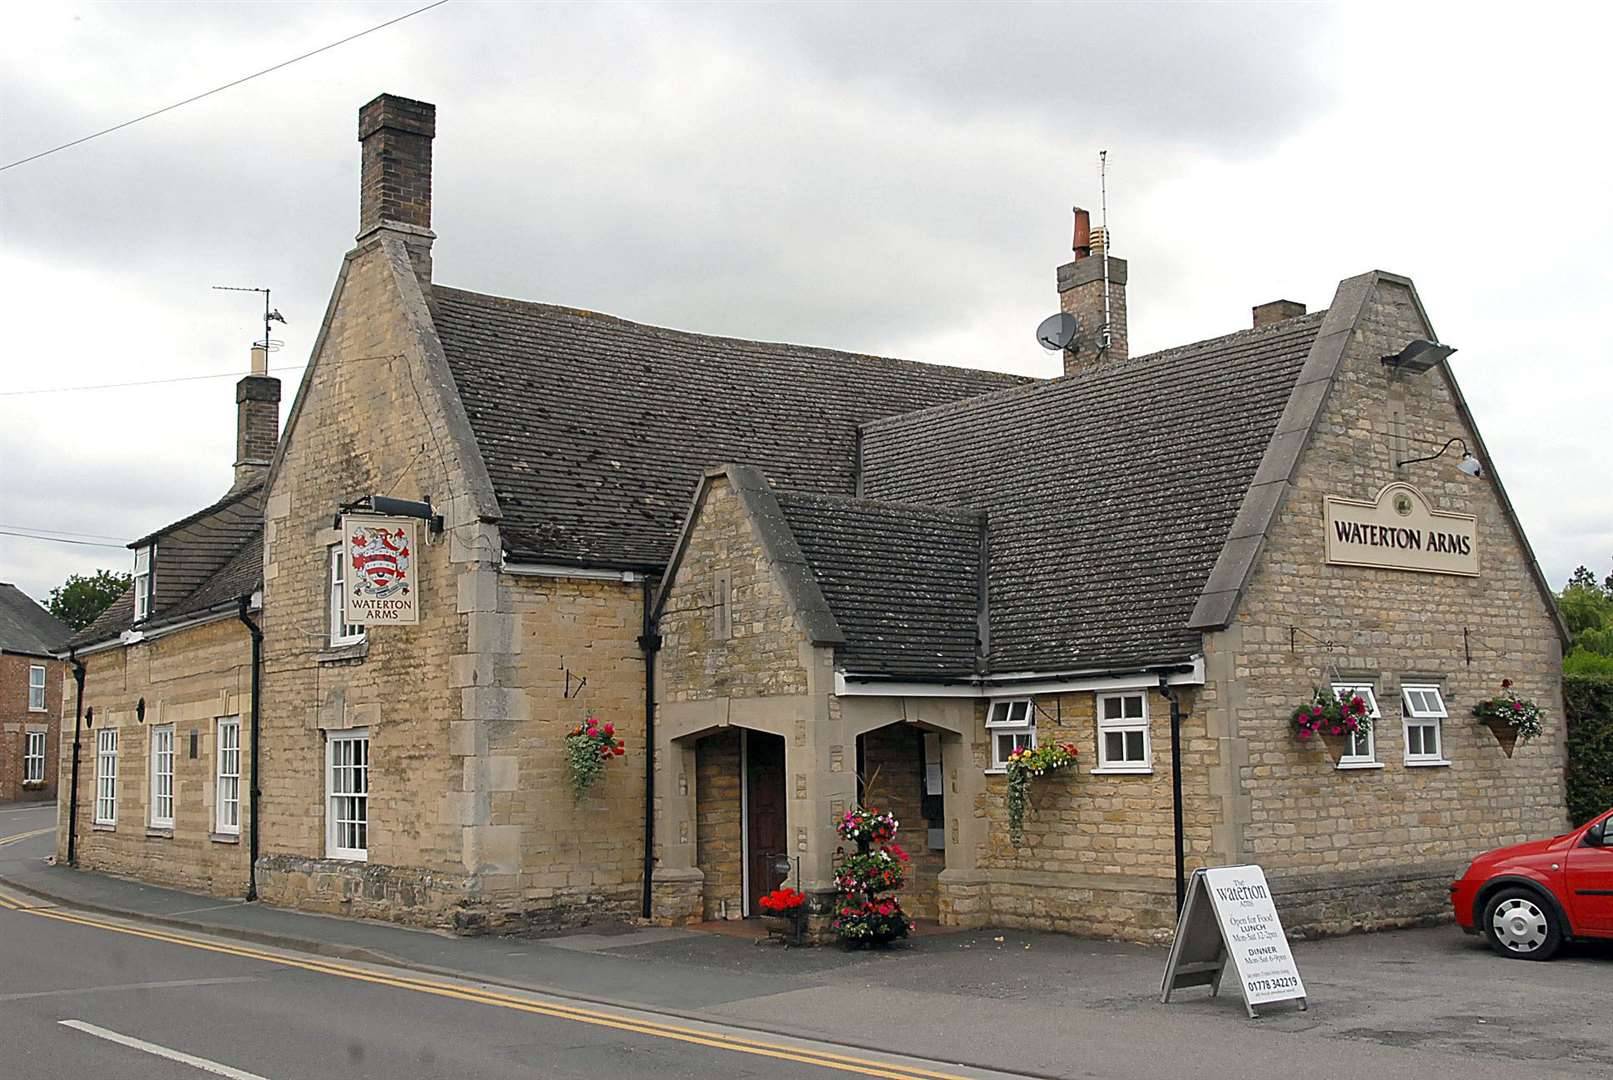 The Waterton Arms, Deeping St James